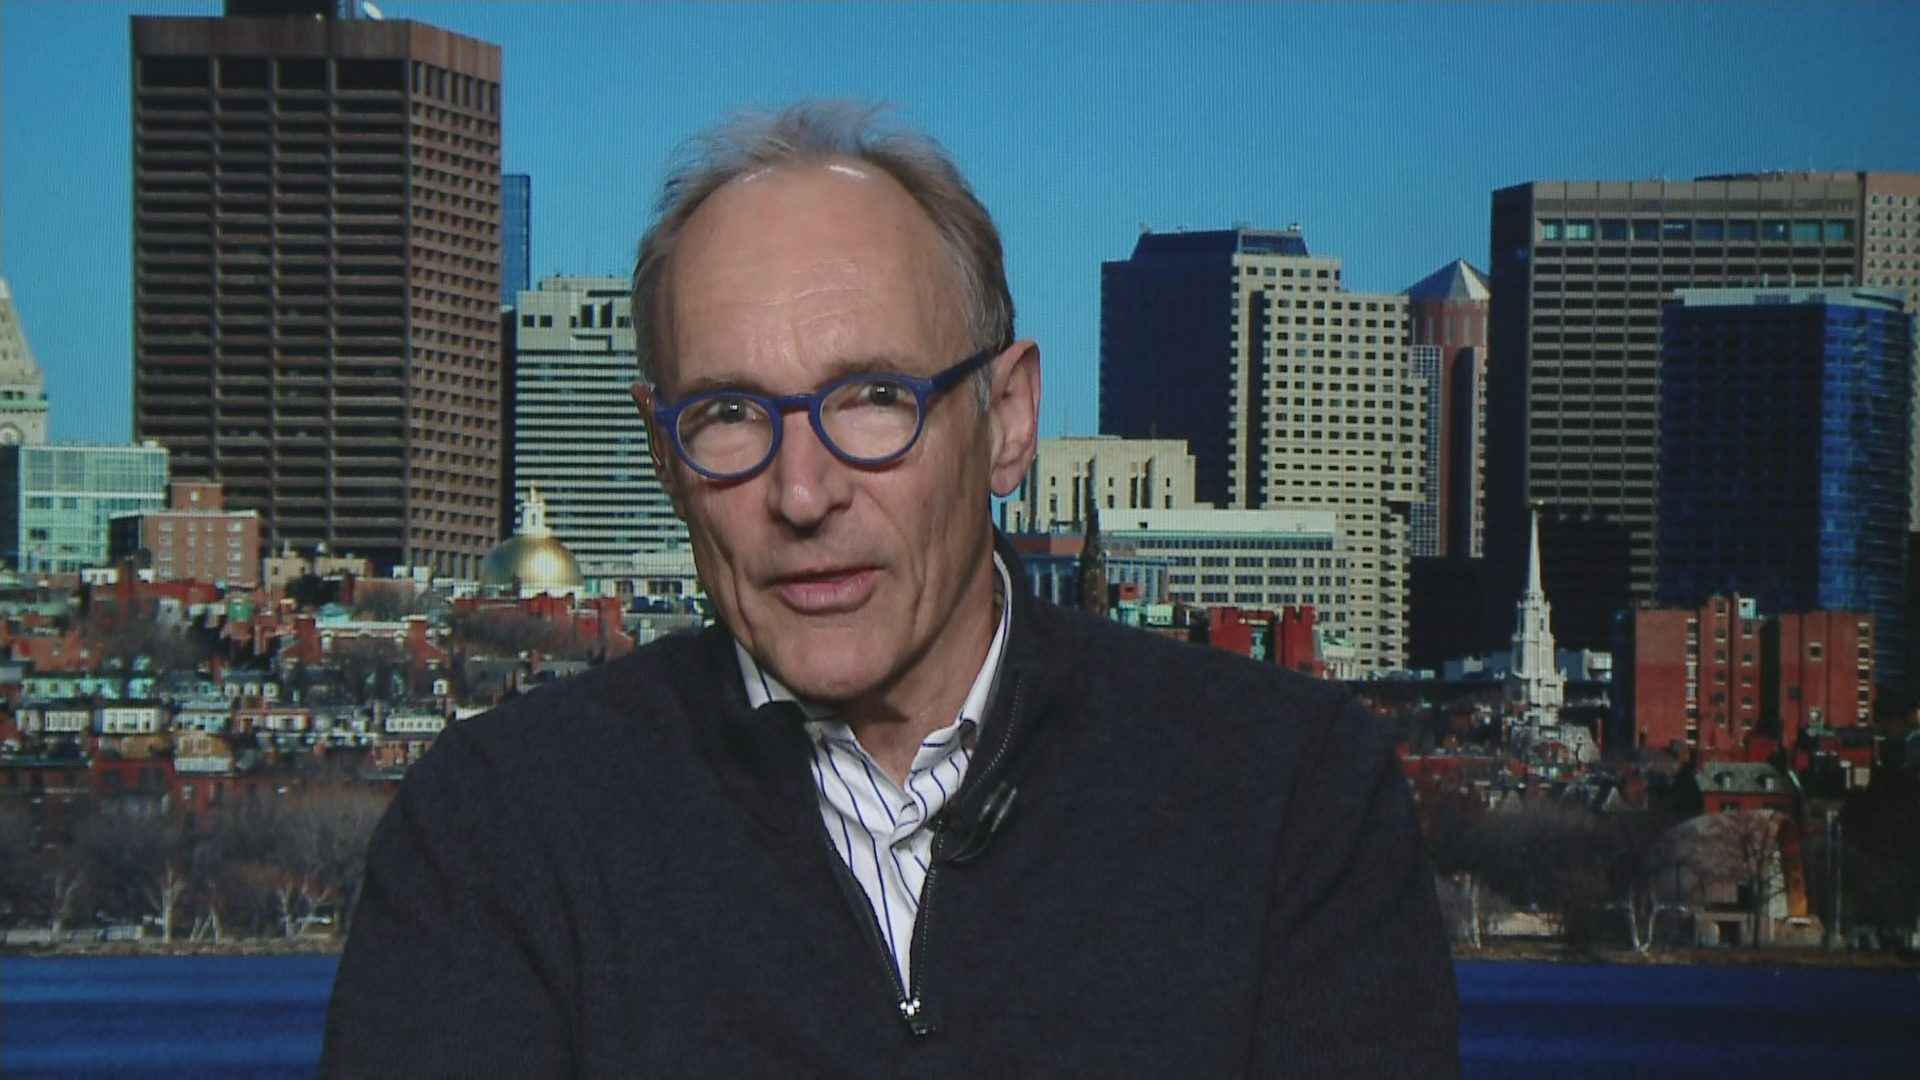 Sir Tim Berners Lee on Cambridge Analytica USA: 'We need to rethink our attitude to web'